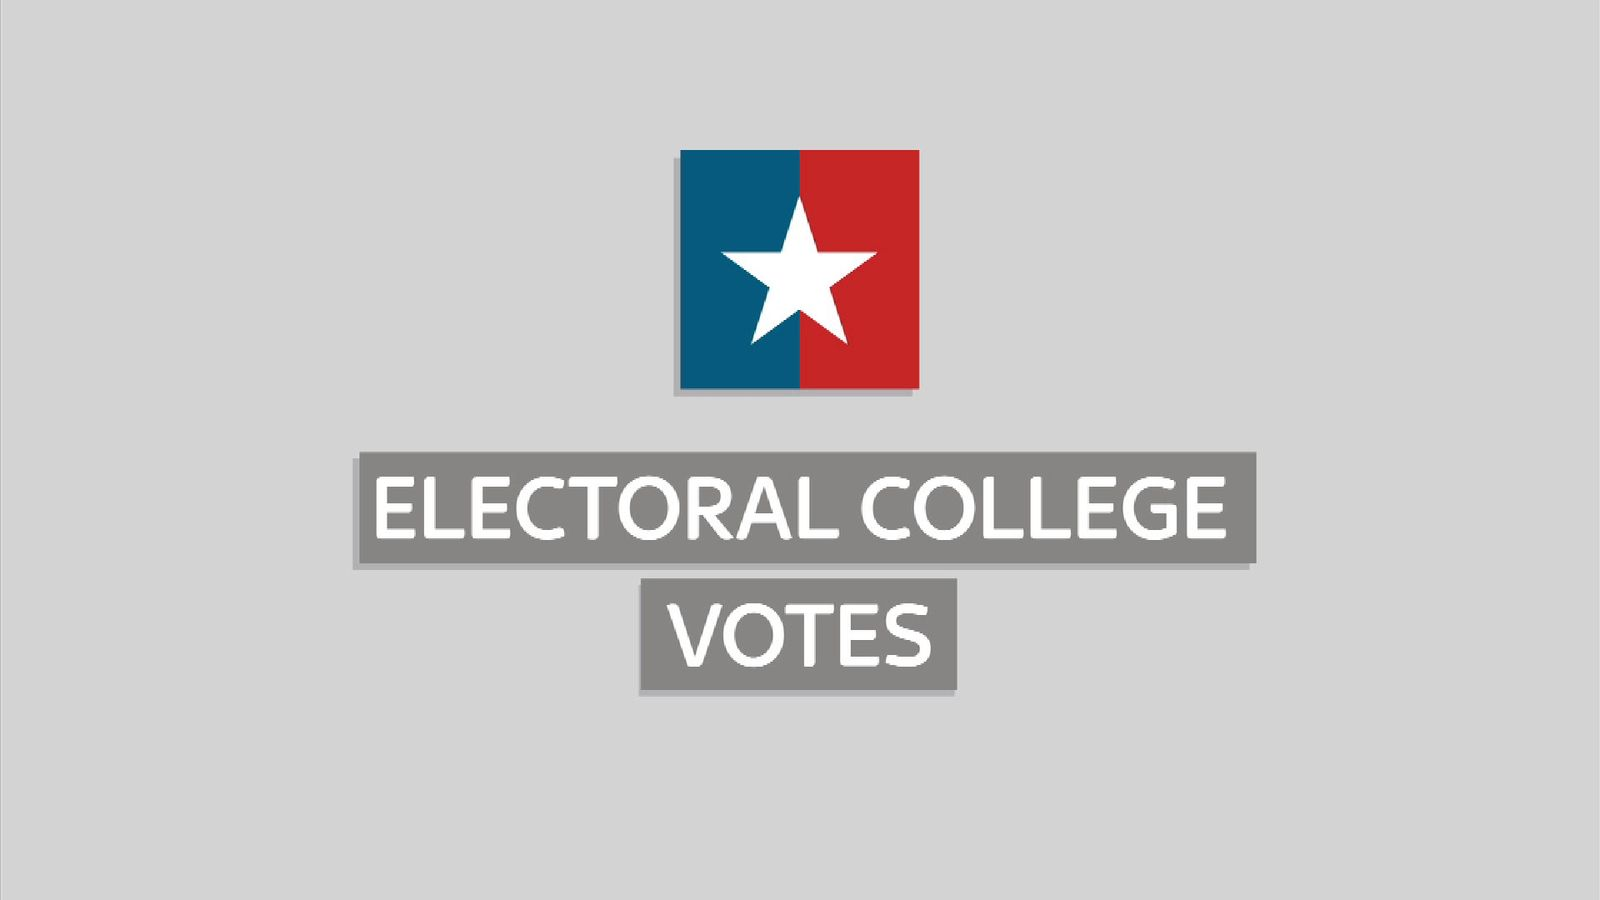 The electoral college explained